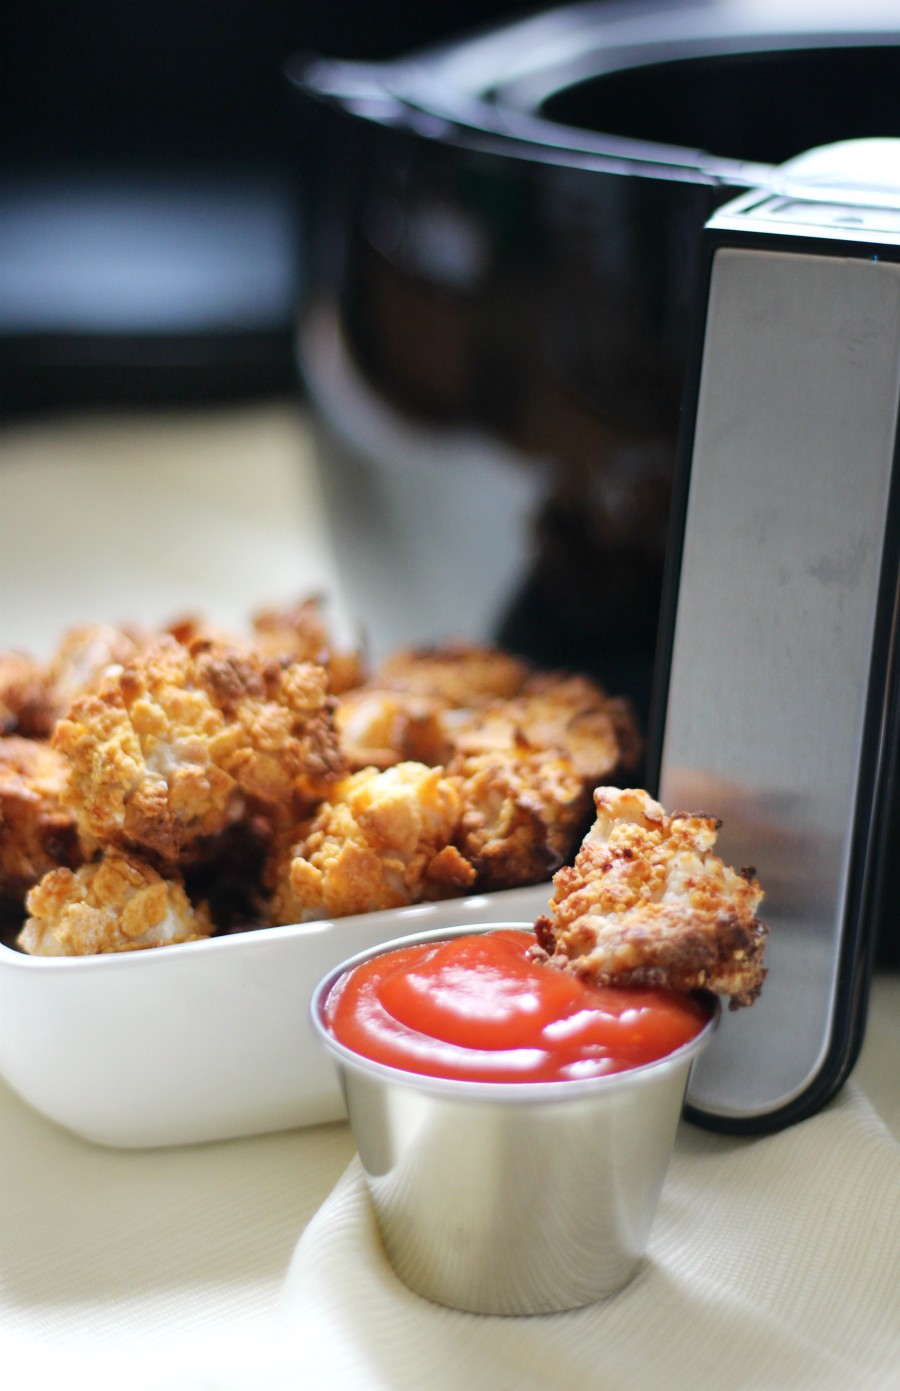 Extra Crispy Gluten-Free Air Fryer Popcorn Chicken (Allergy-Free, No Oil) | Strength and Sunshine @RebeccaGF666 No oil needed for this Extra Crispy Gluten-Free Air Fryer Popcorn Chicken recipe! A healthier, super crunchy version of your fast food favorite that's top 8 allergy-free, a mom-approved quick & easy dinner idea, and kid-friendly! #popcornchicken #glutenfree #allergyfree #dinner #chicken